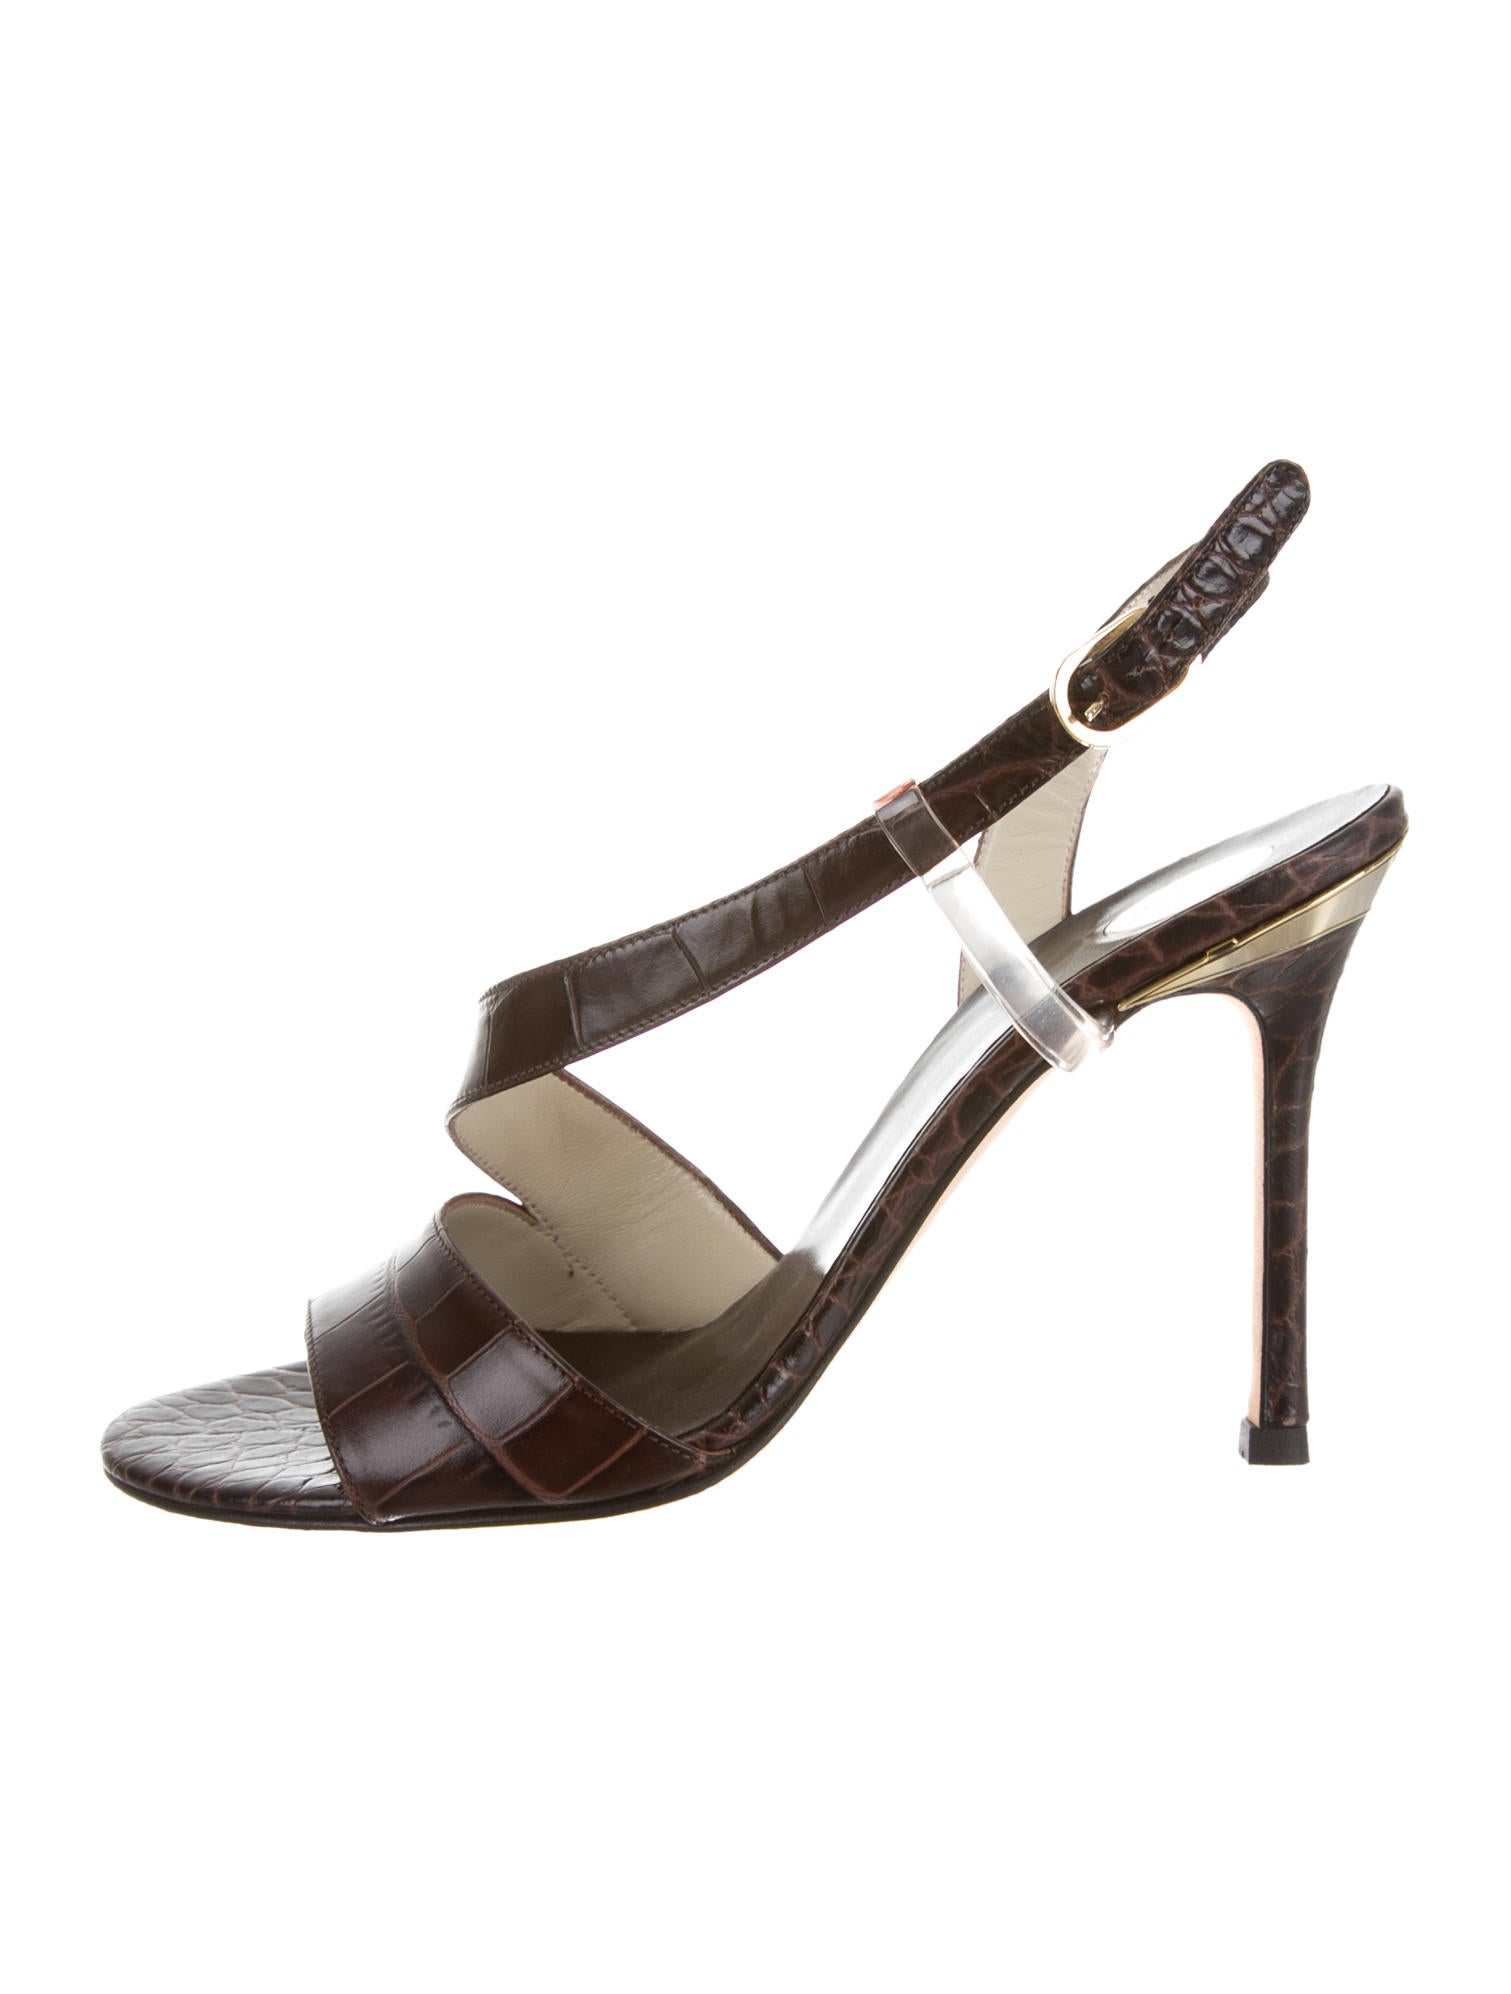 Versace Sandals - Shoes - VES22984 | The RealReal